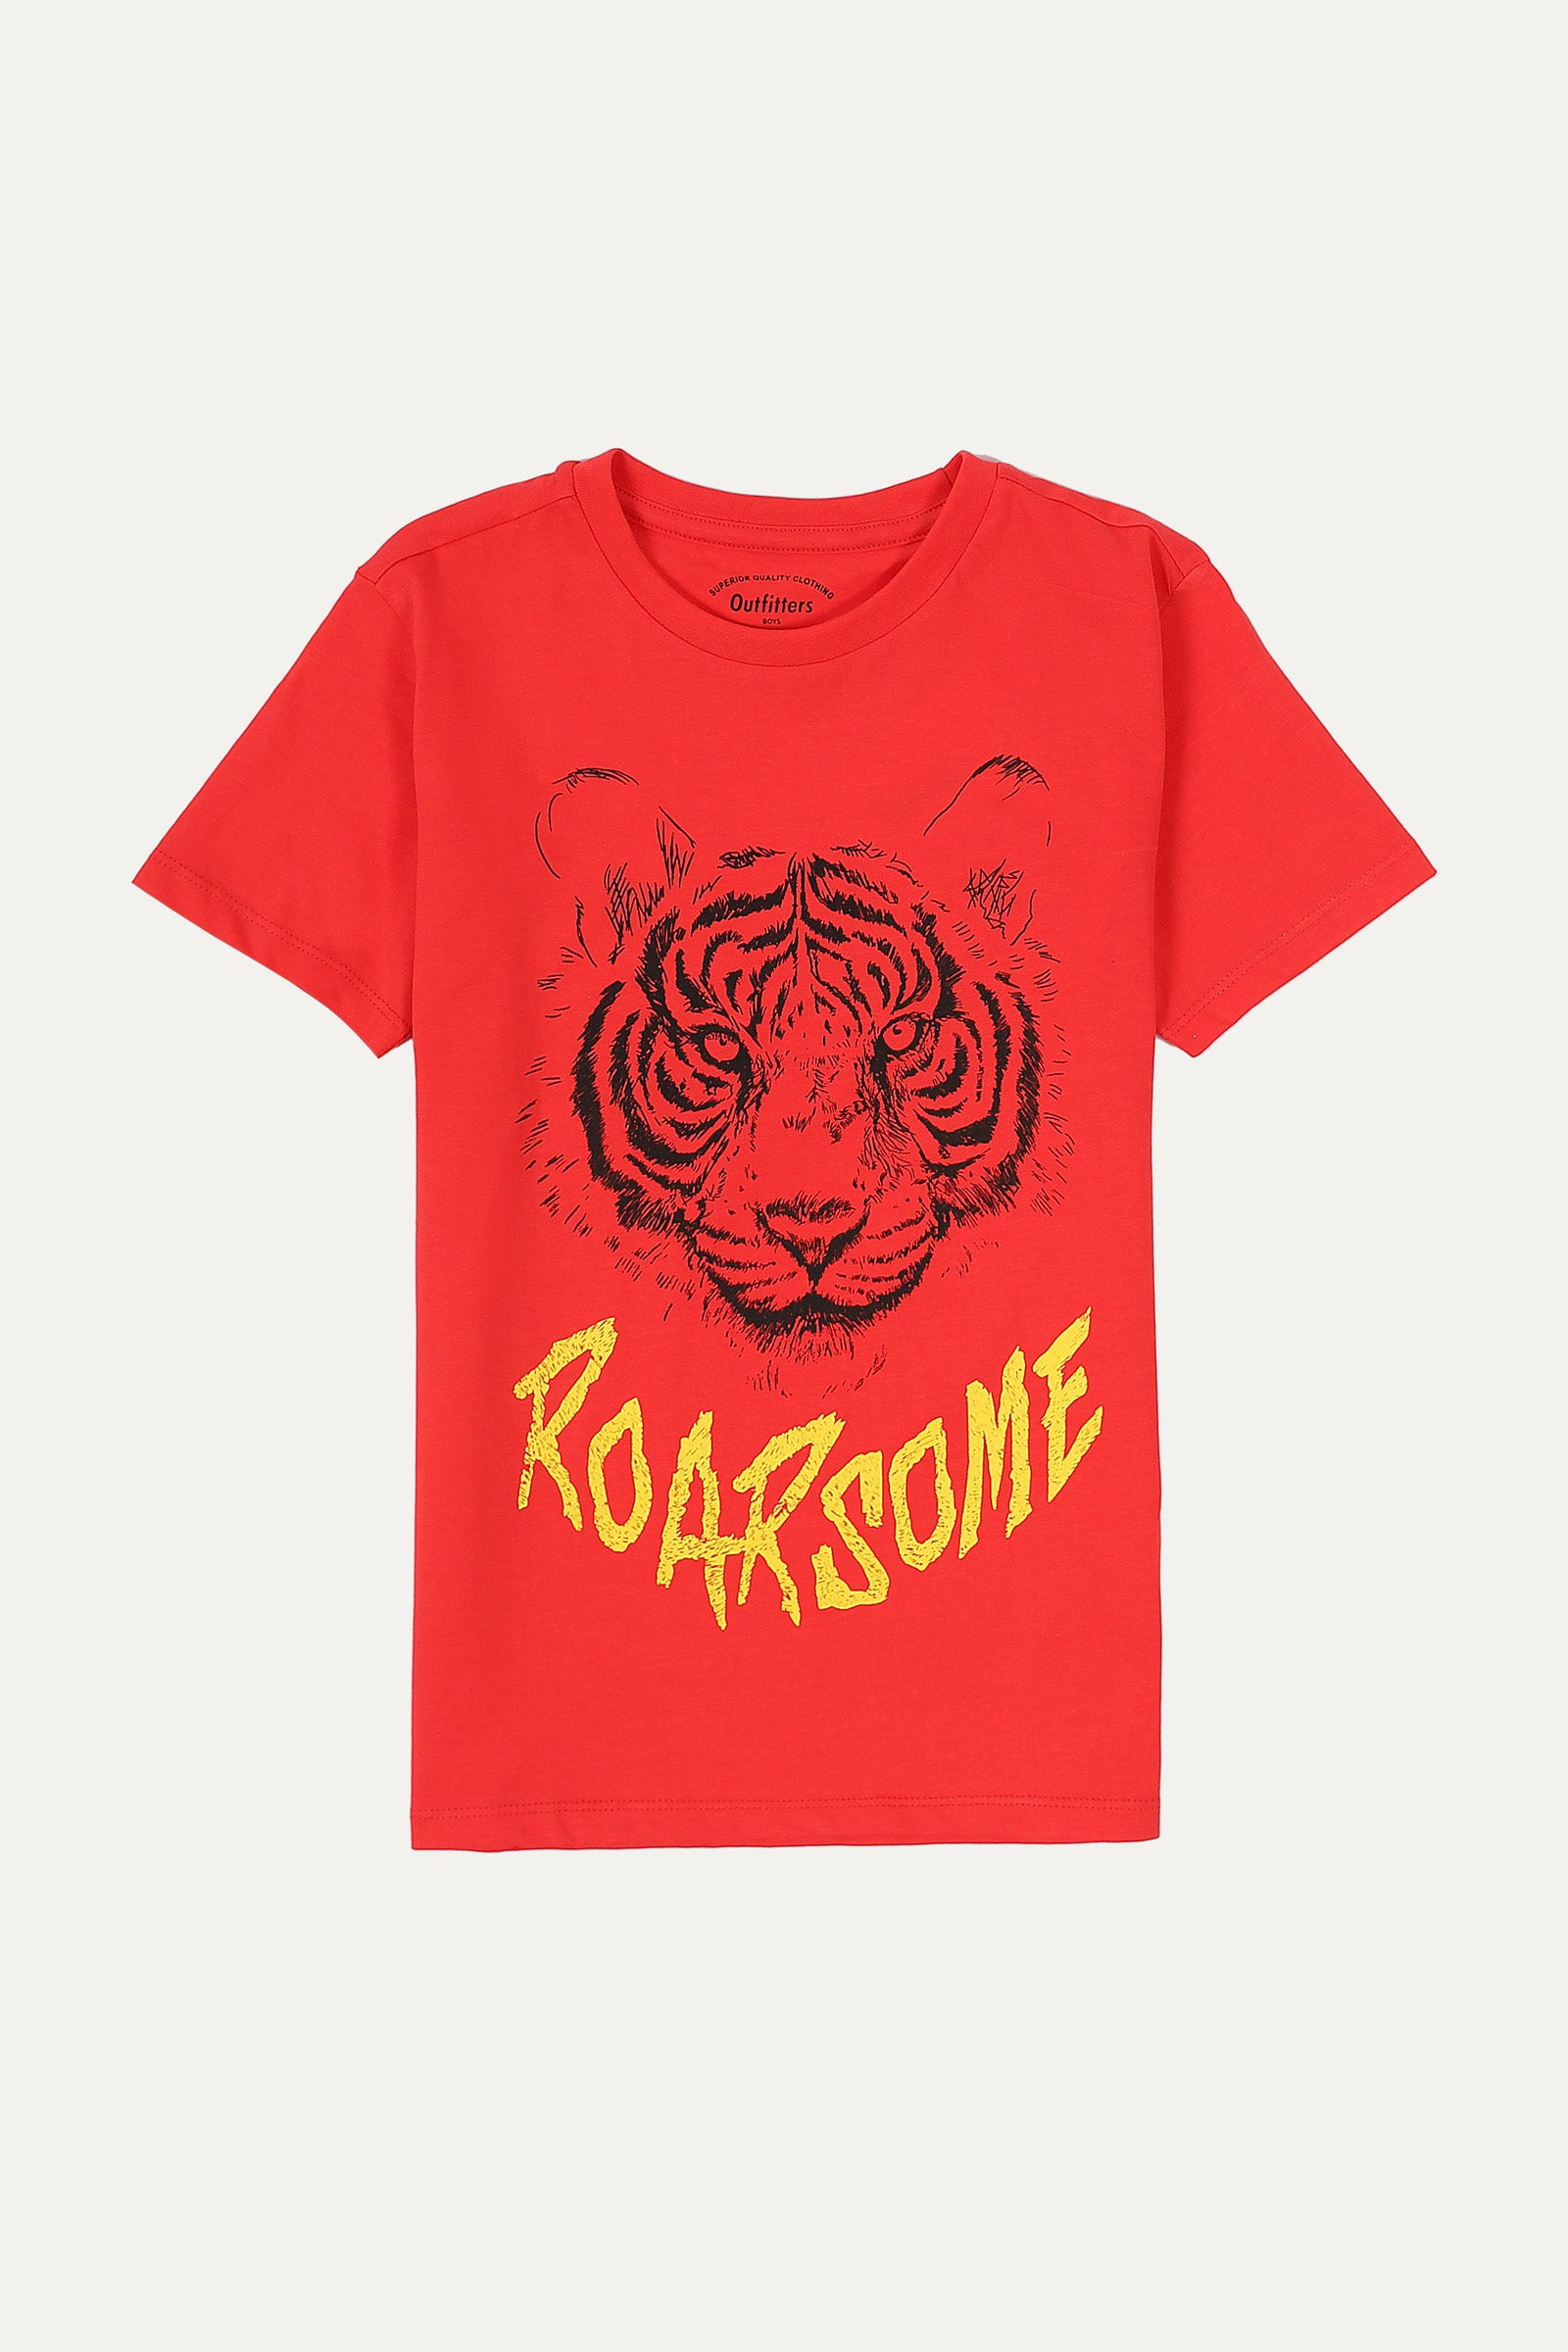 Roarsome' graphic t-shirt